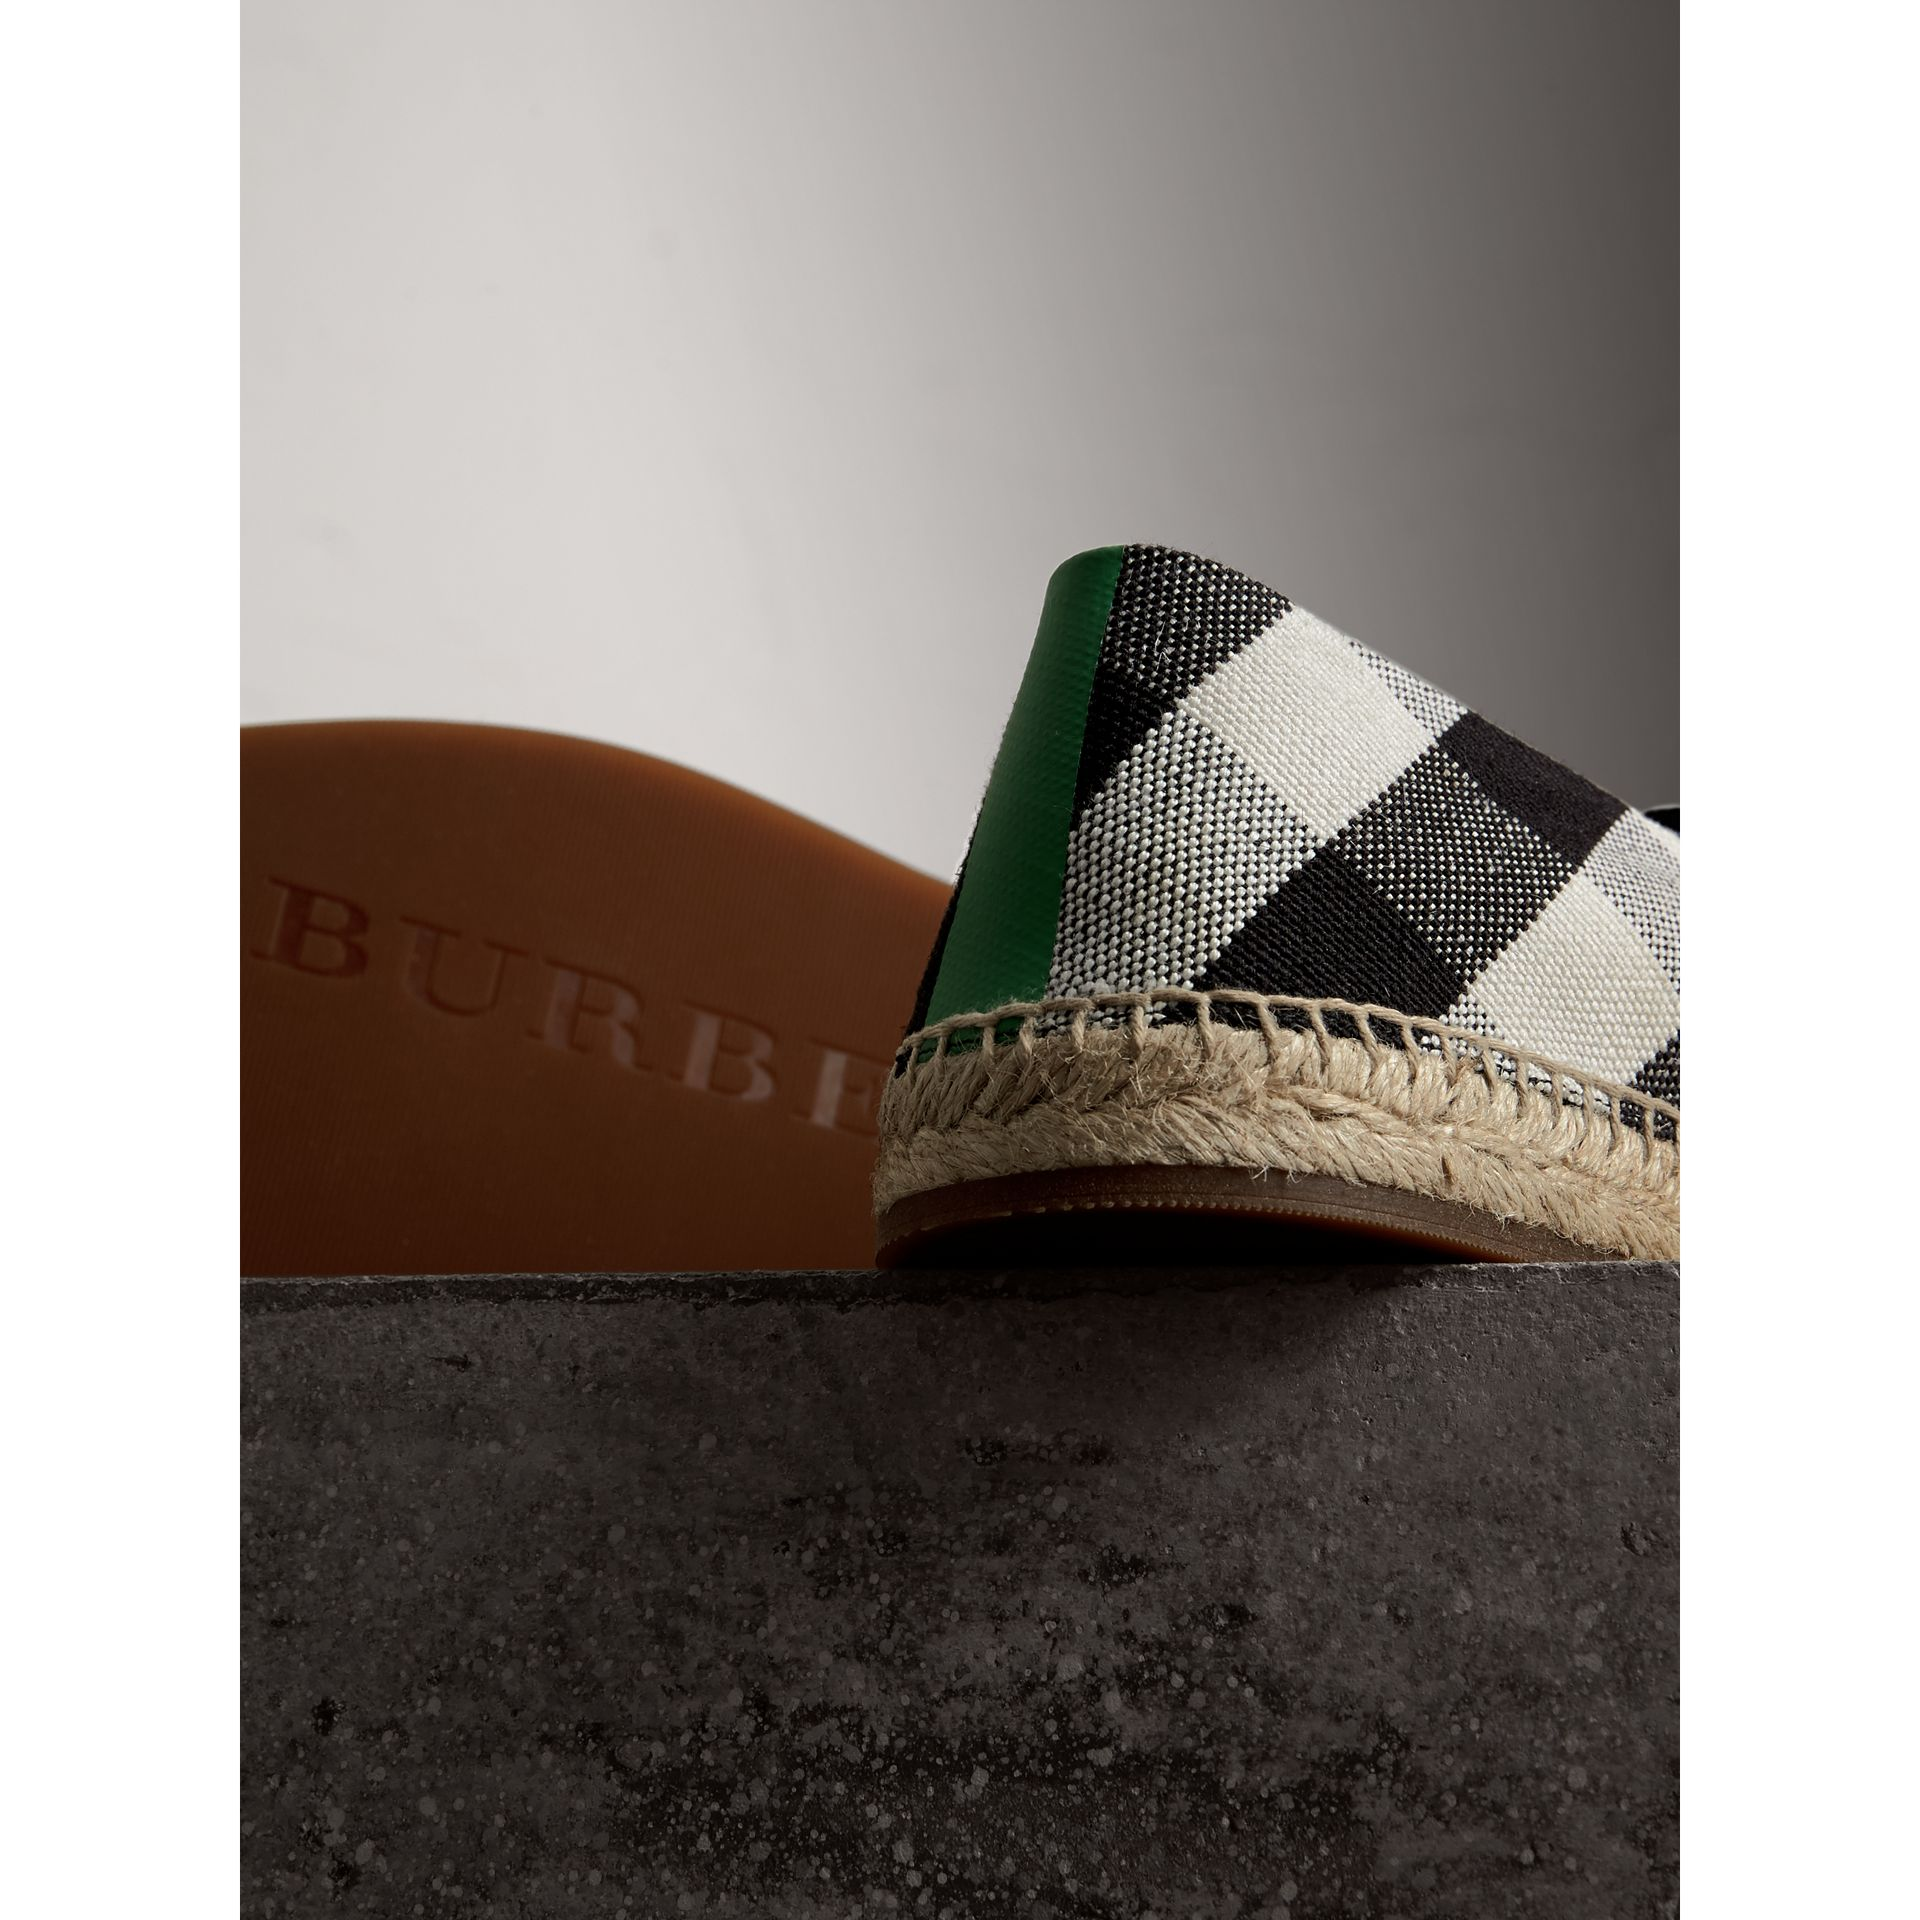 Check Cotton Canvas Seam-sealed Espadrilles in Black - Men | Burberry United Kingdom - gallery image 1